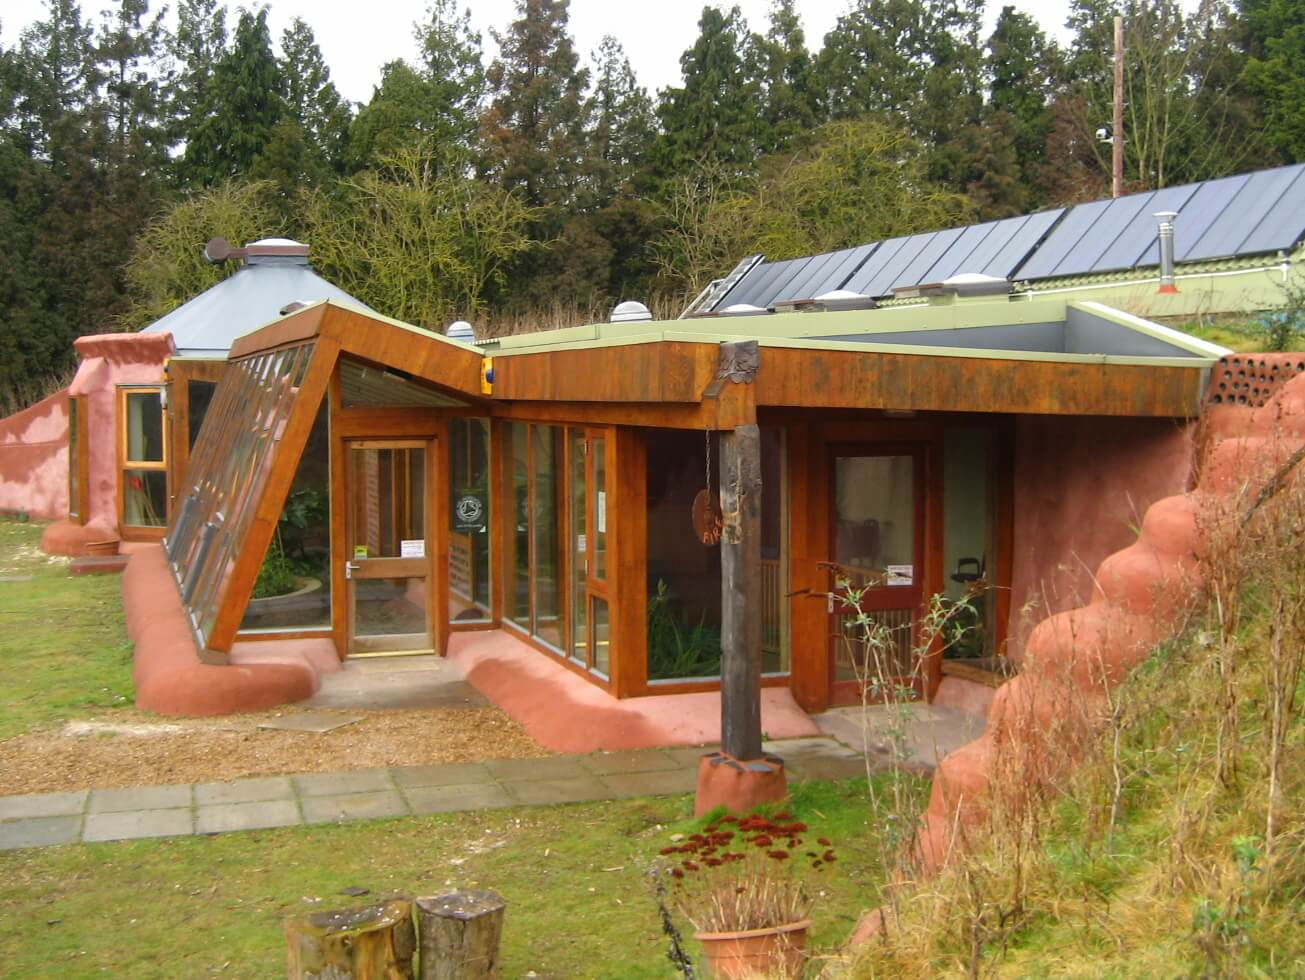 The Future of Living: Earthships and Tiny Homes